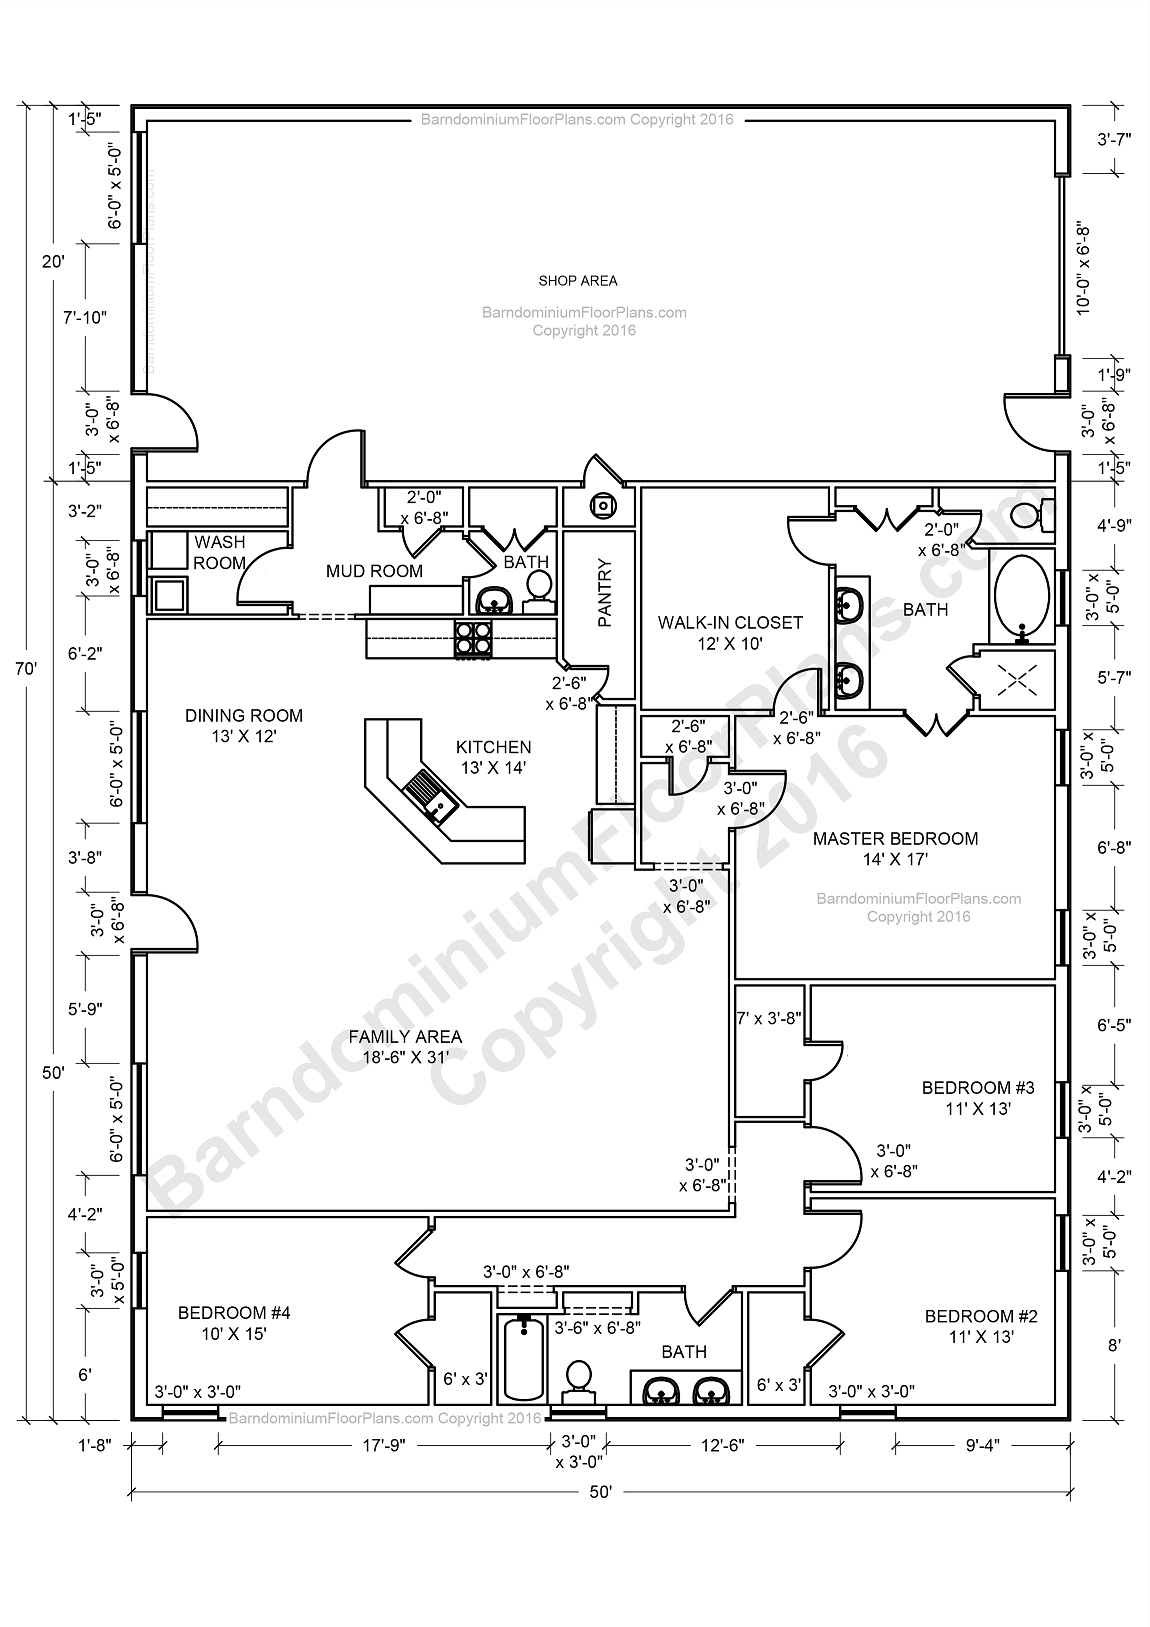 Beast metal building barndominium floor plans and design for Shop floor plans